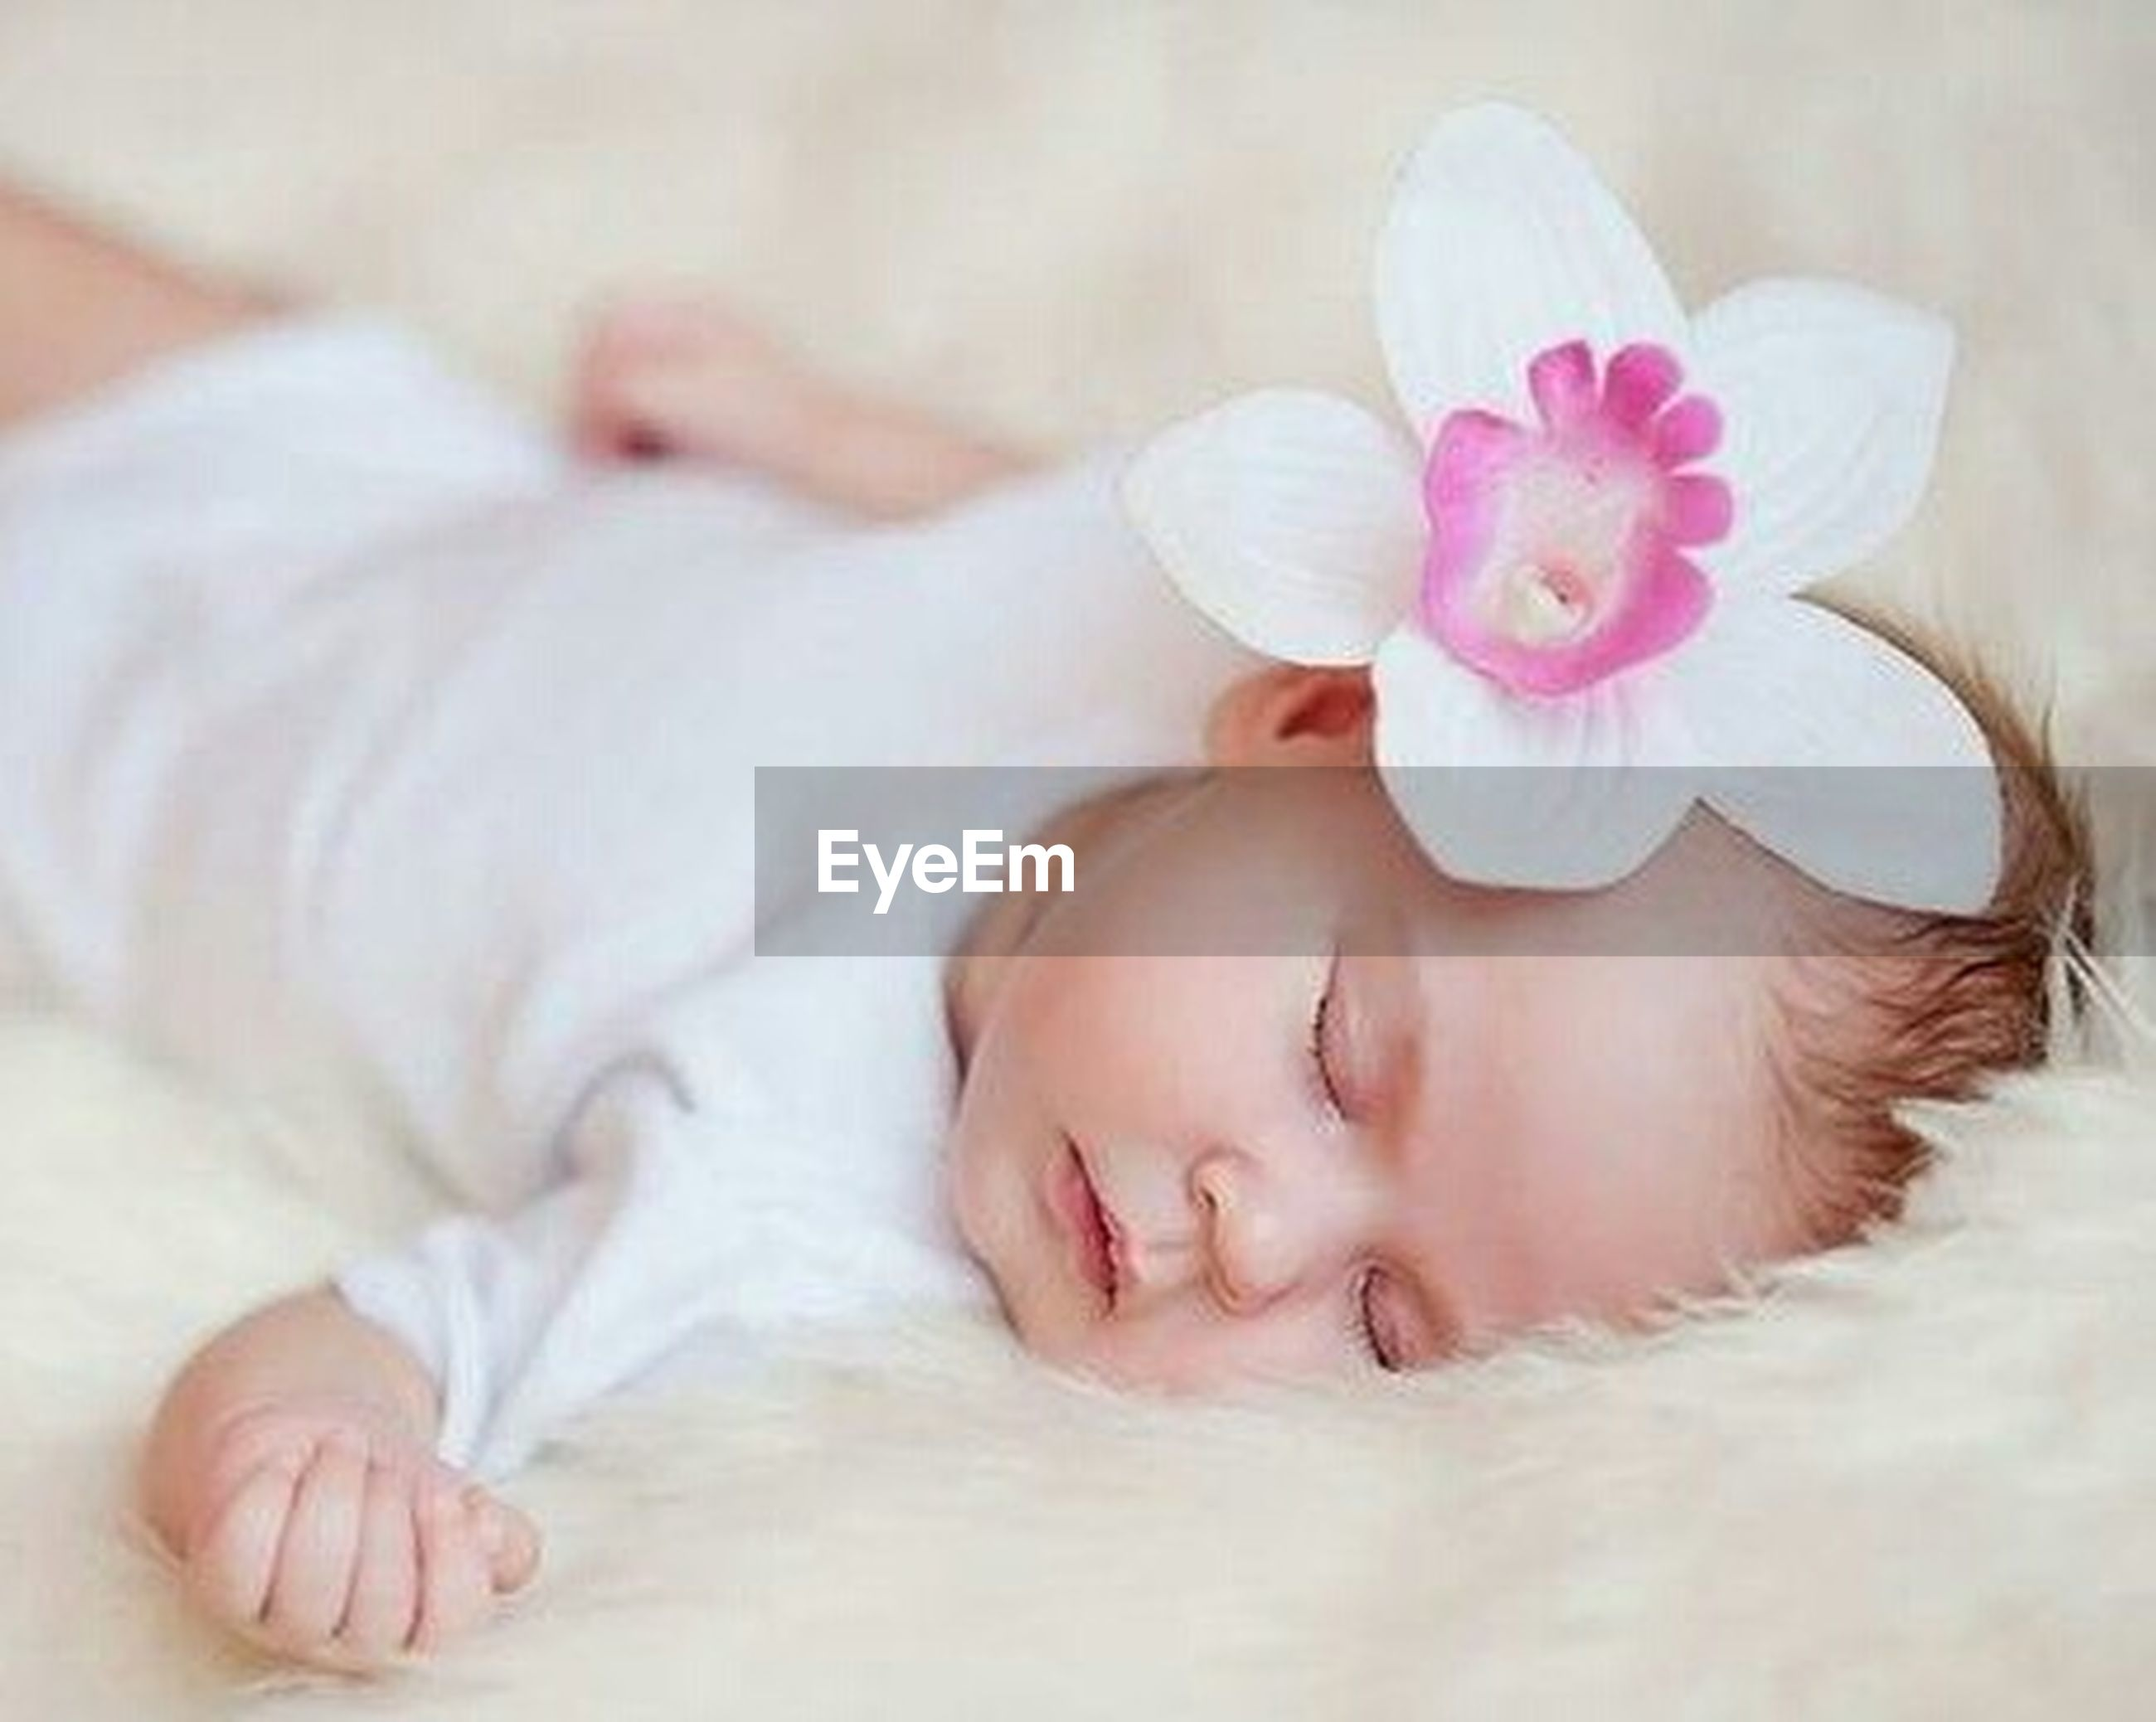 childhood, innocence, cute, baby, babyhood, indoors, person, elementary age, toddler, girls, bed, relaxation, lifestyles, sleeping, lying down, eyes closed, close-up, fragility